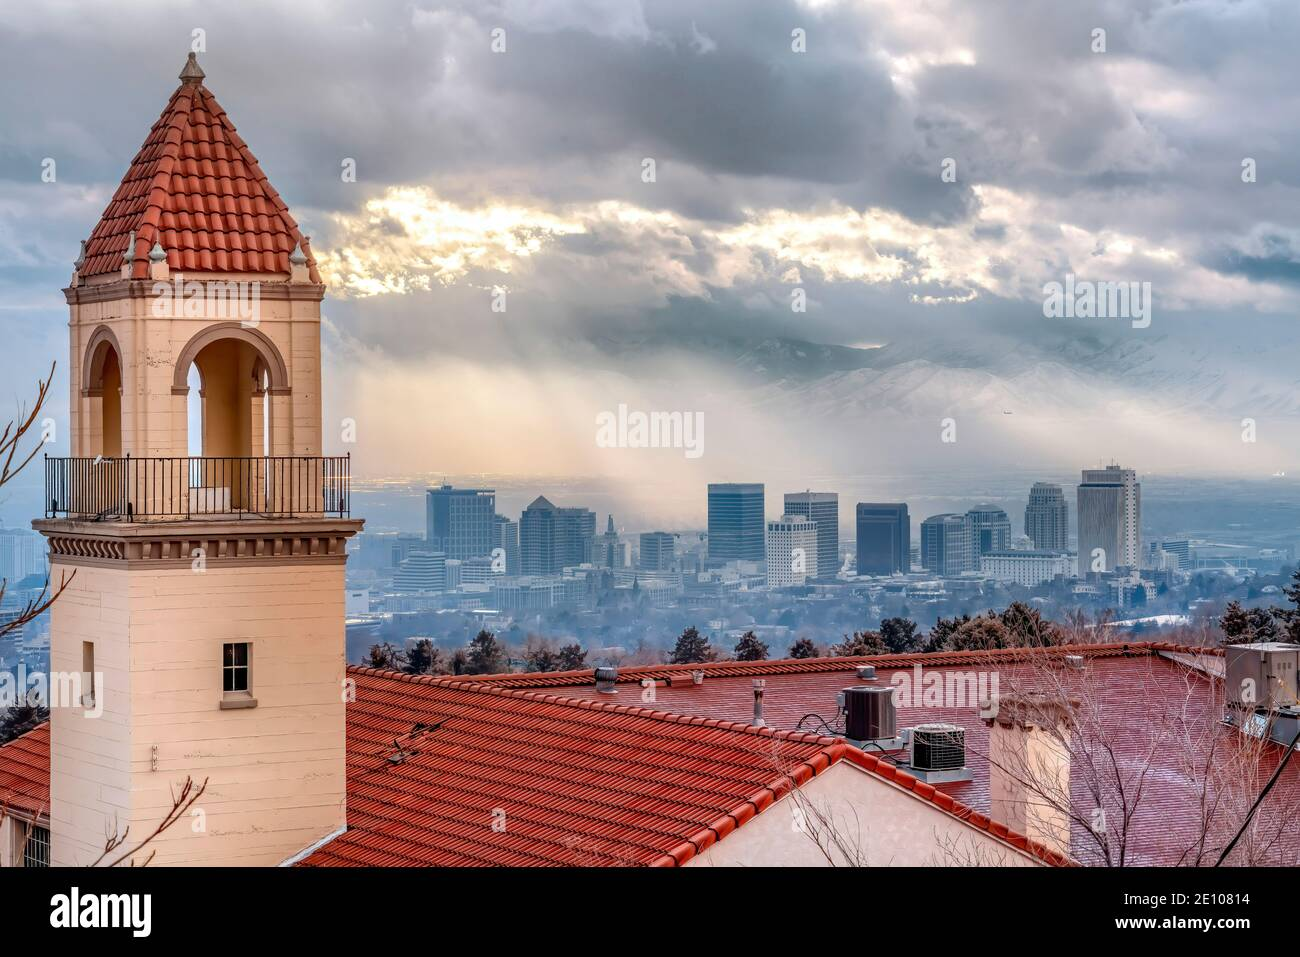 Bell tower and red rooftop of a church against foggy Salt Lake City landscape Stock Photo